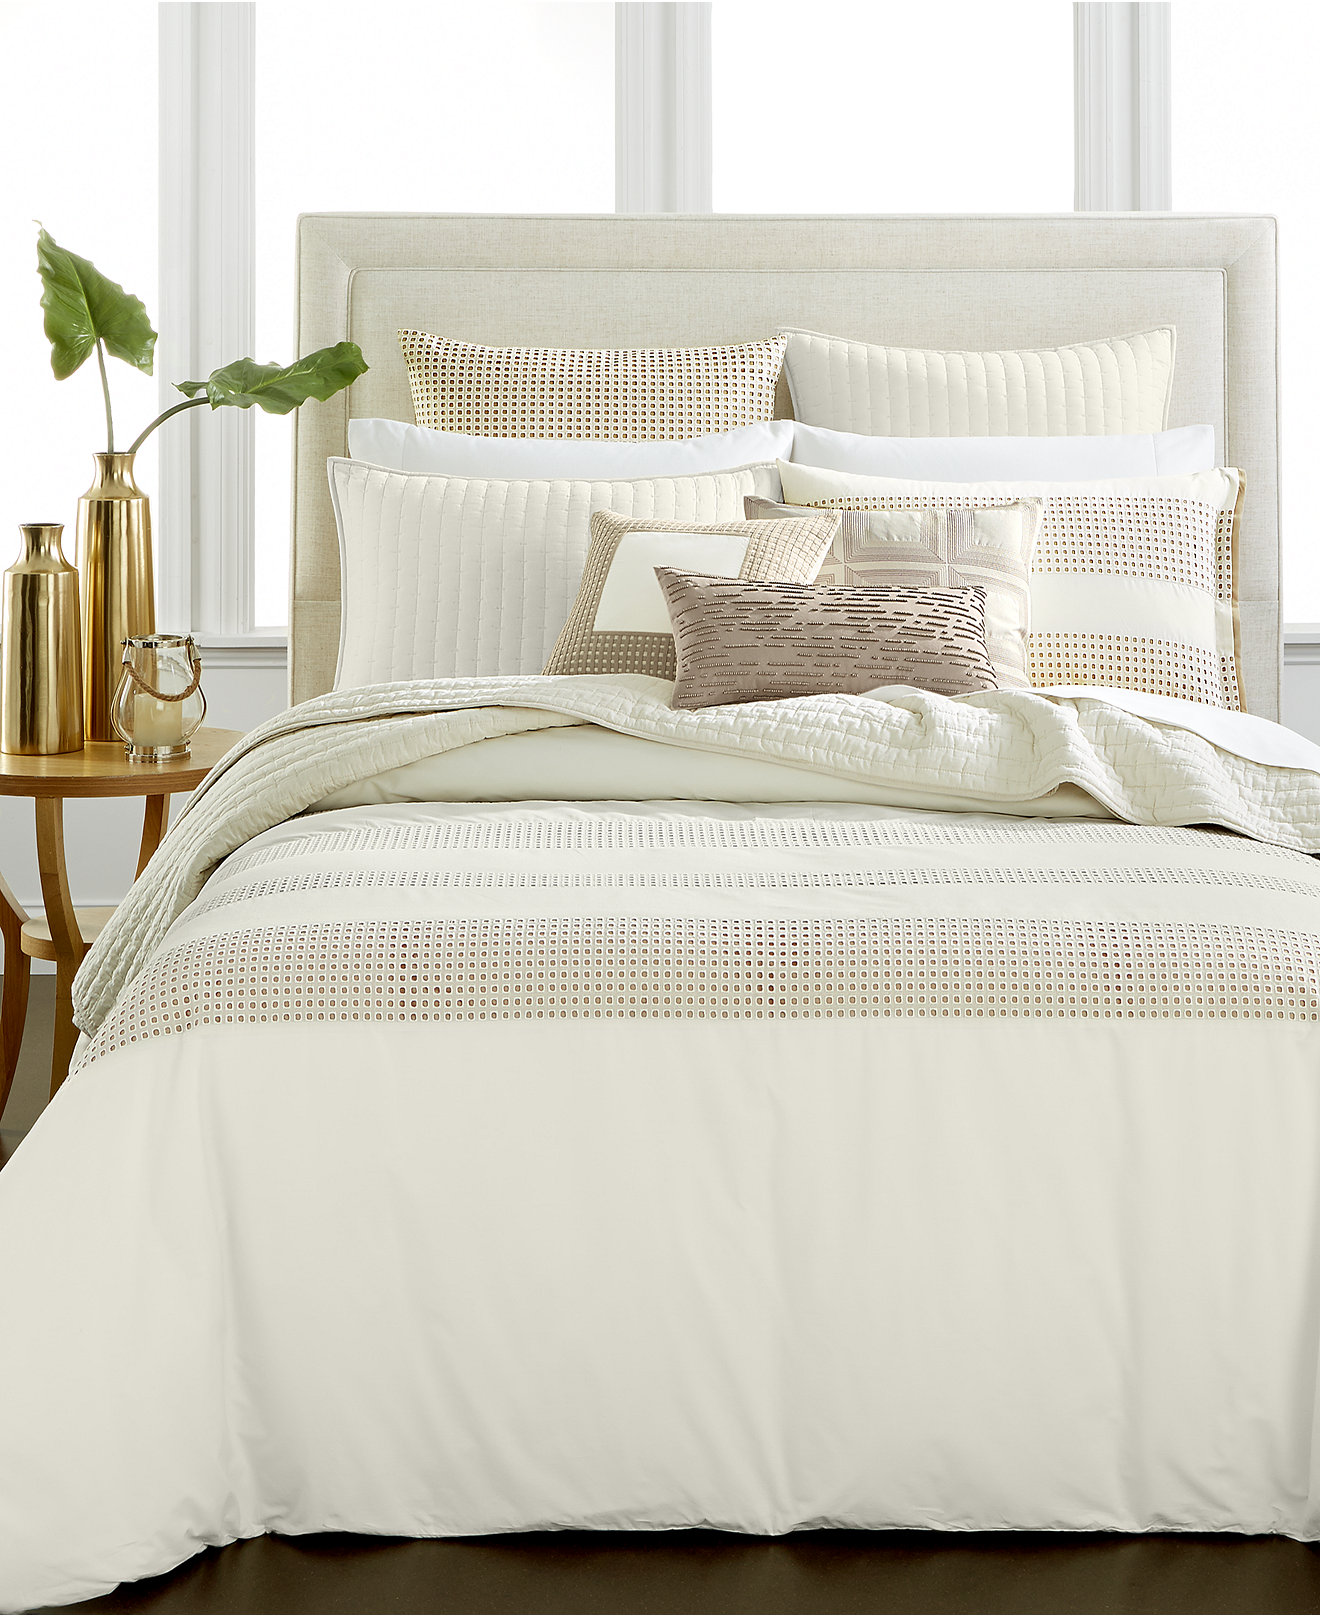 hotel collection bedding collections  macy's - hotel collection modern eyelet bedding collection created for macy's